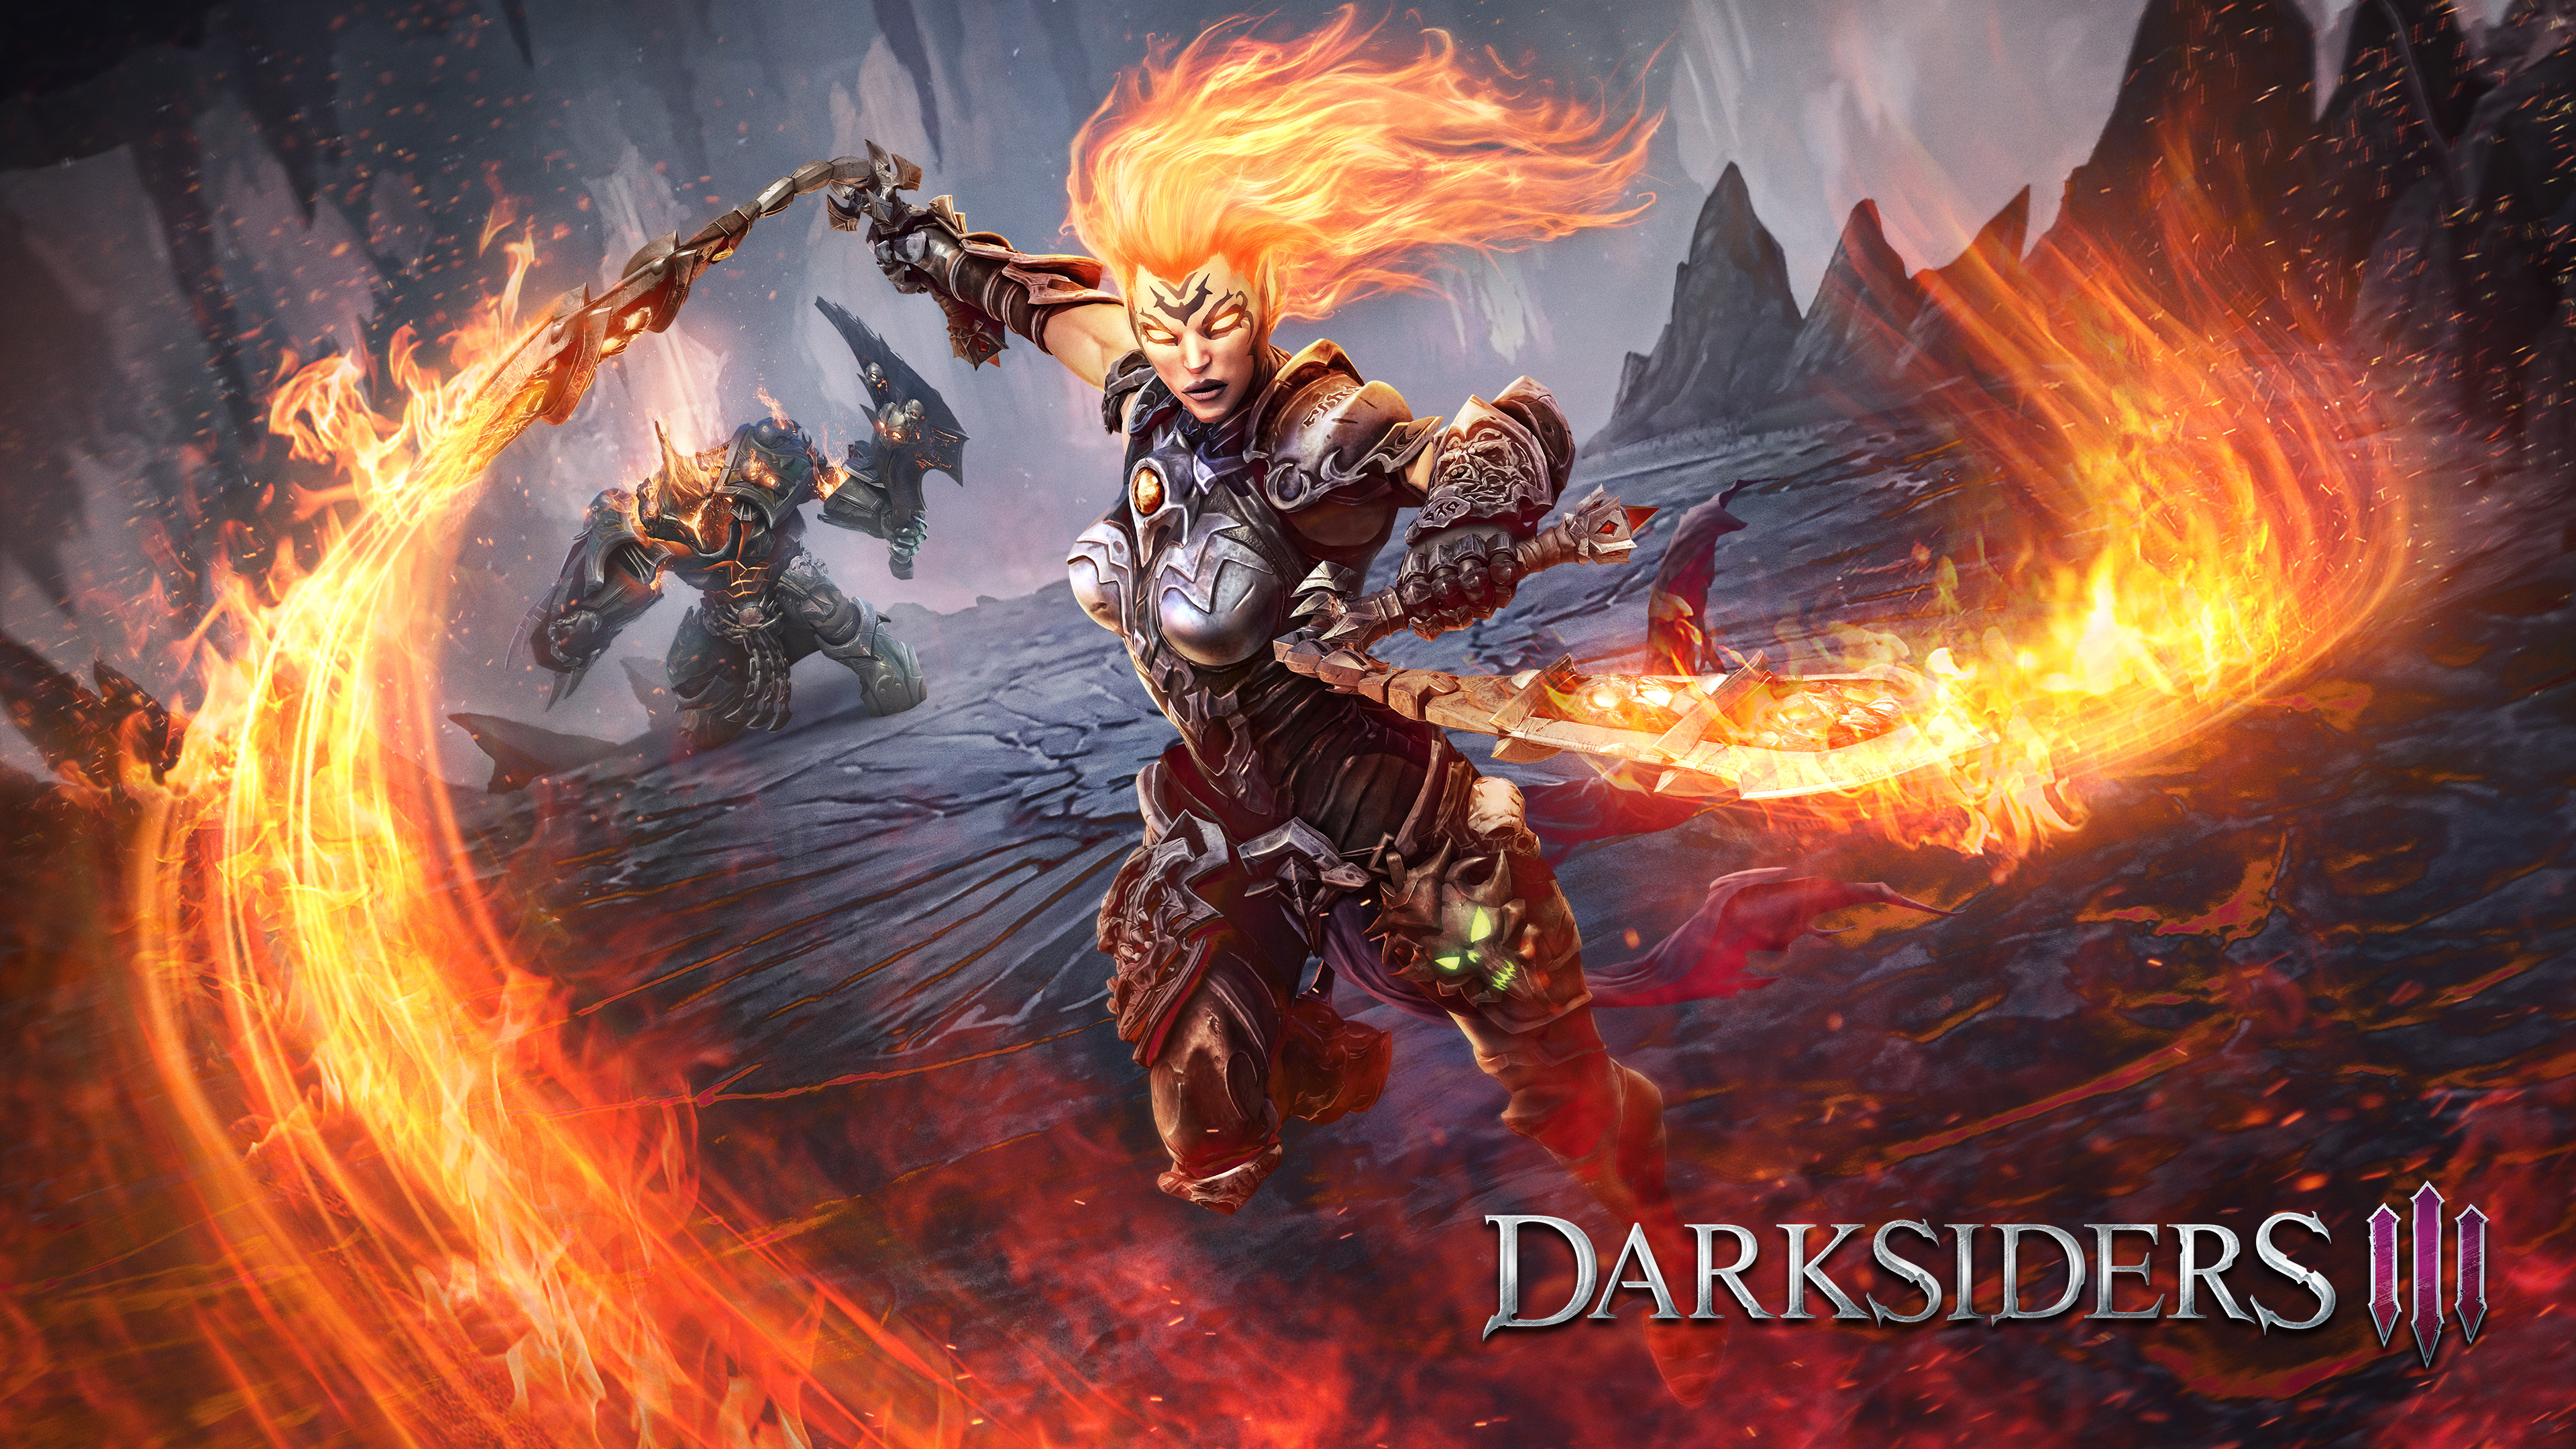 Darksiders Iii 4k Hd Games 4k Wallpapers Images Backgrounds